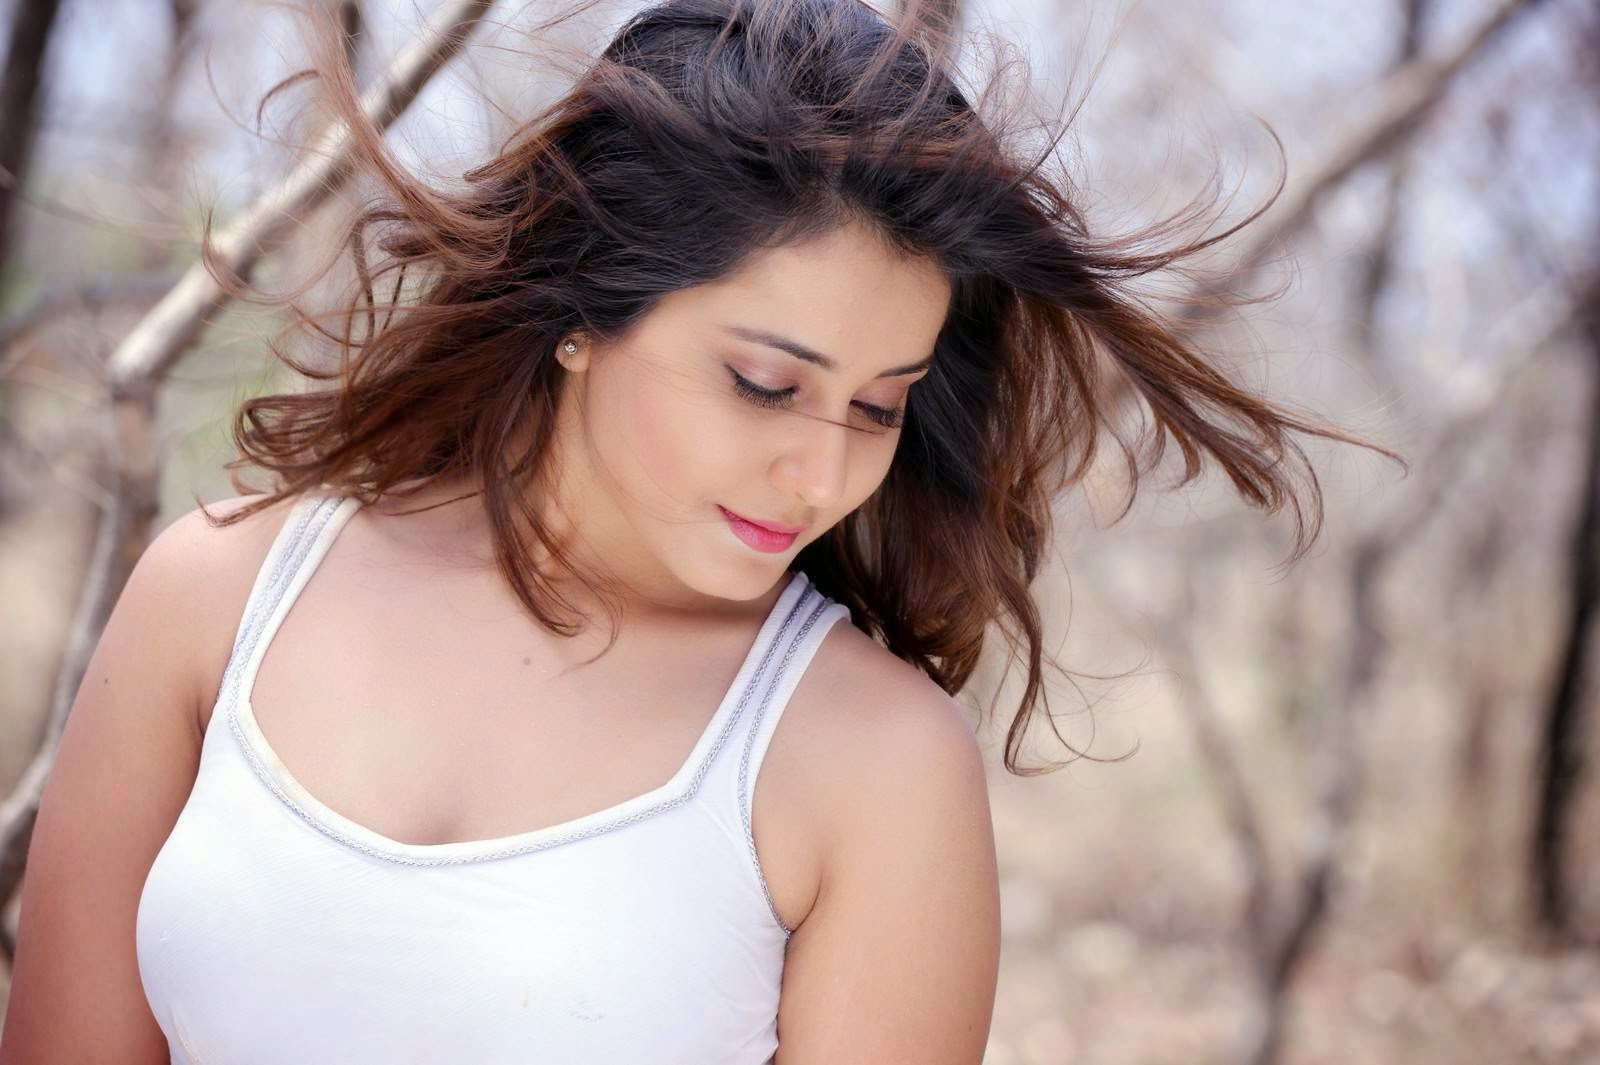 Here Are 40 Beautiful Cute Hot And Stylish Full Hd